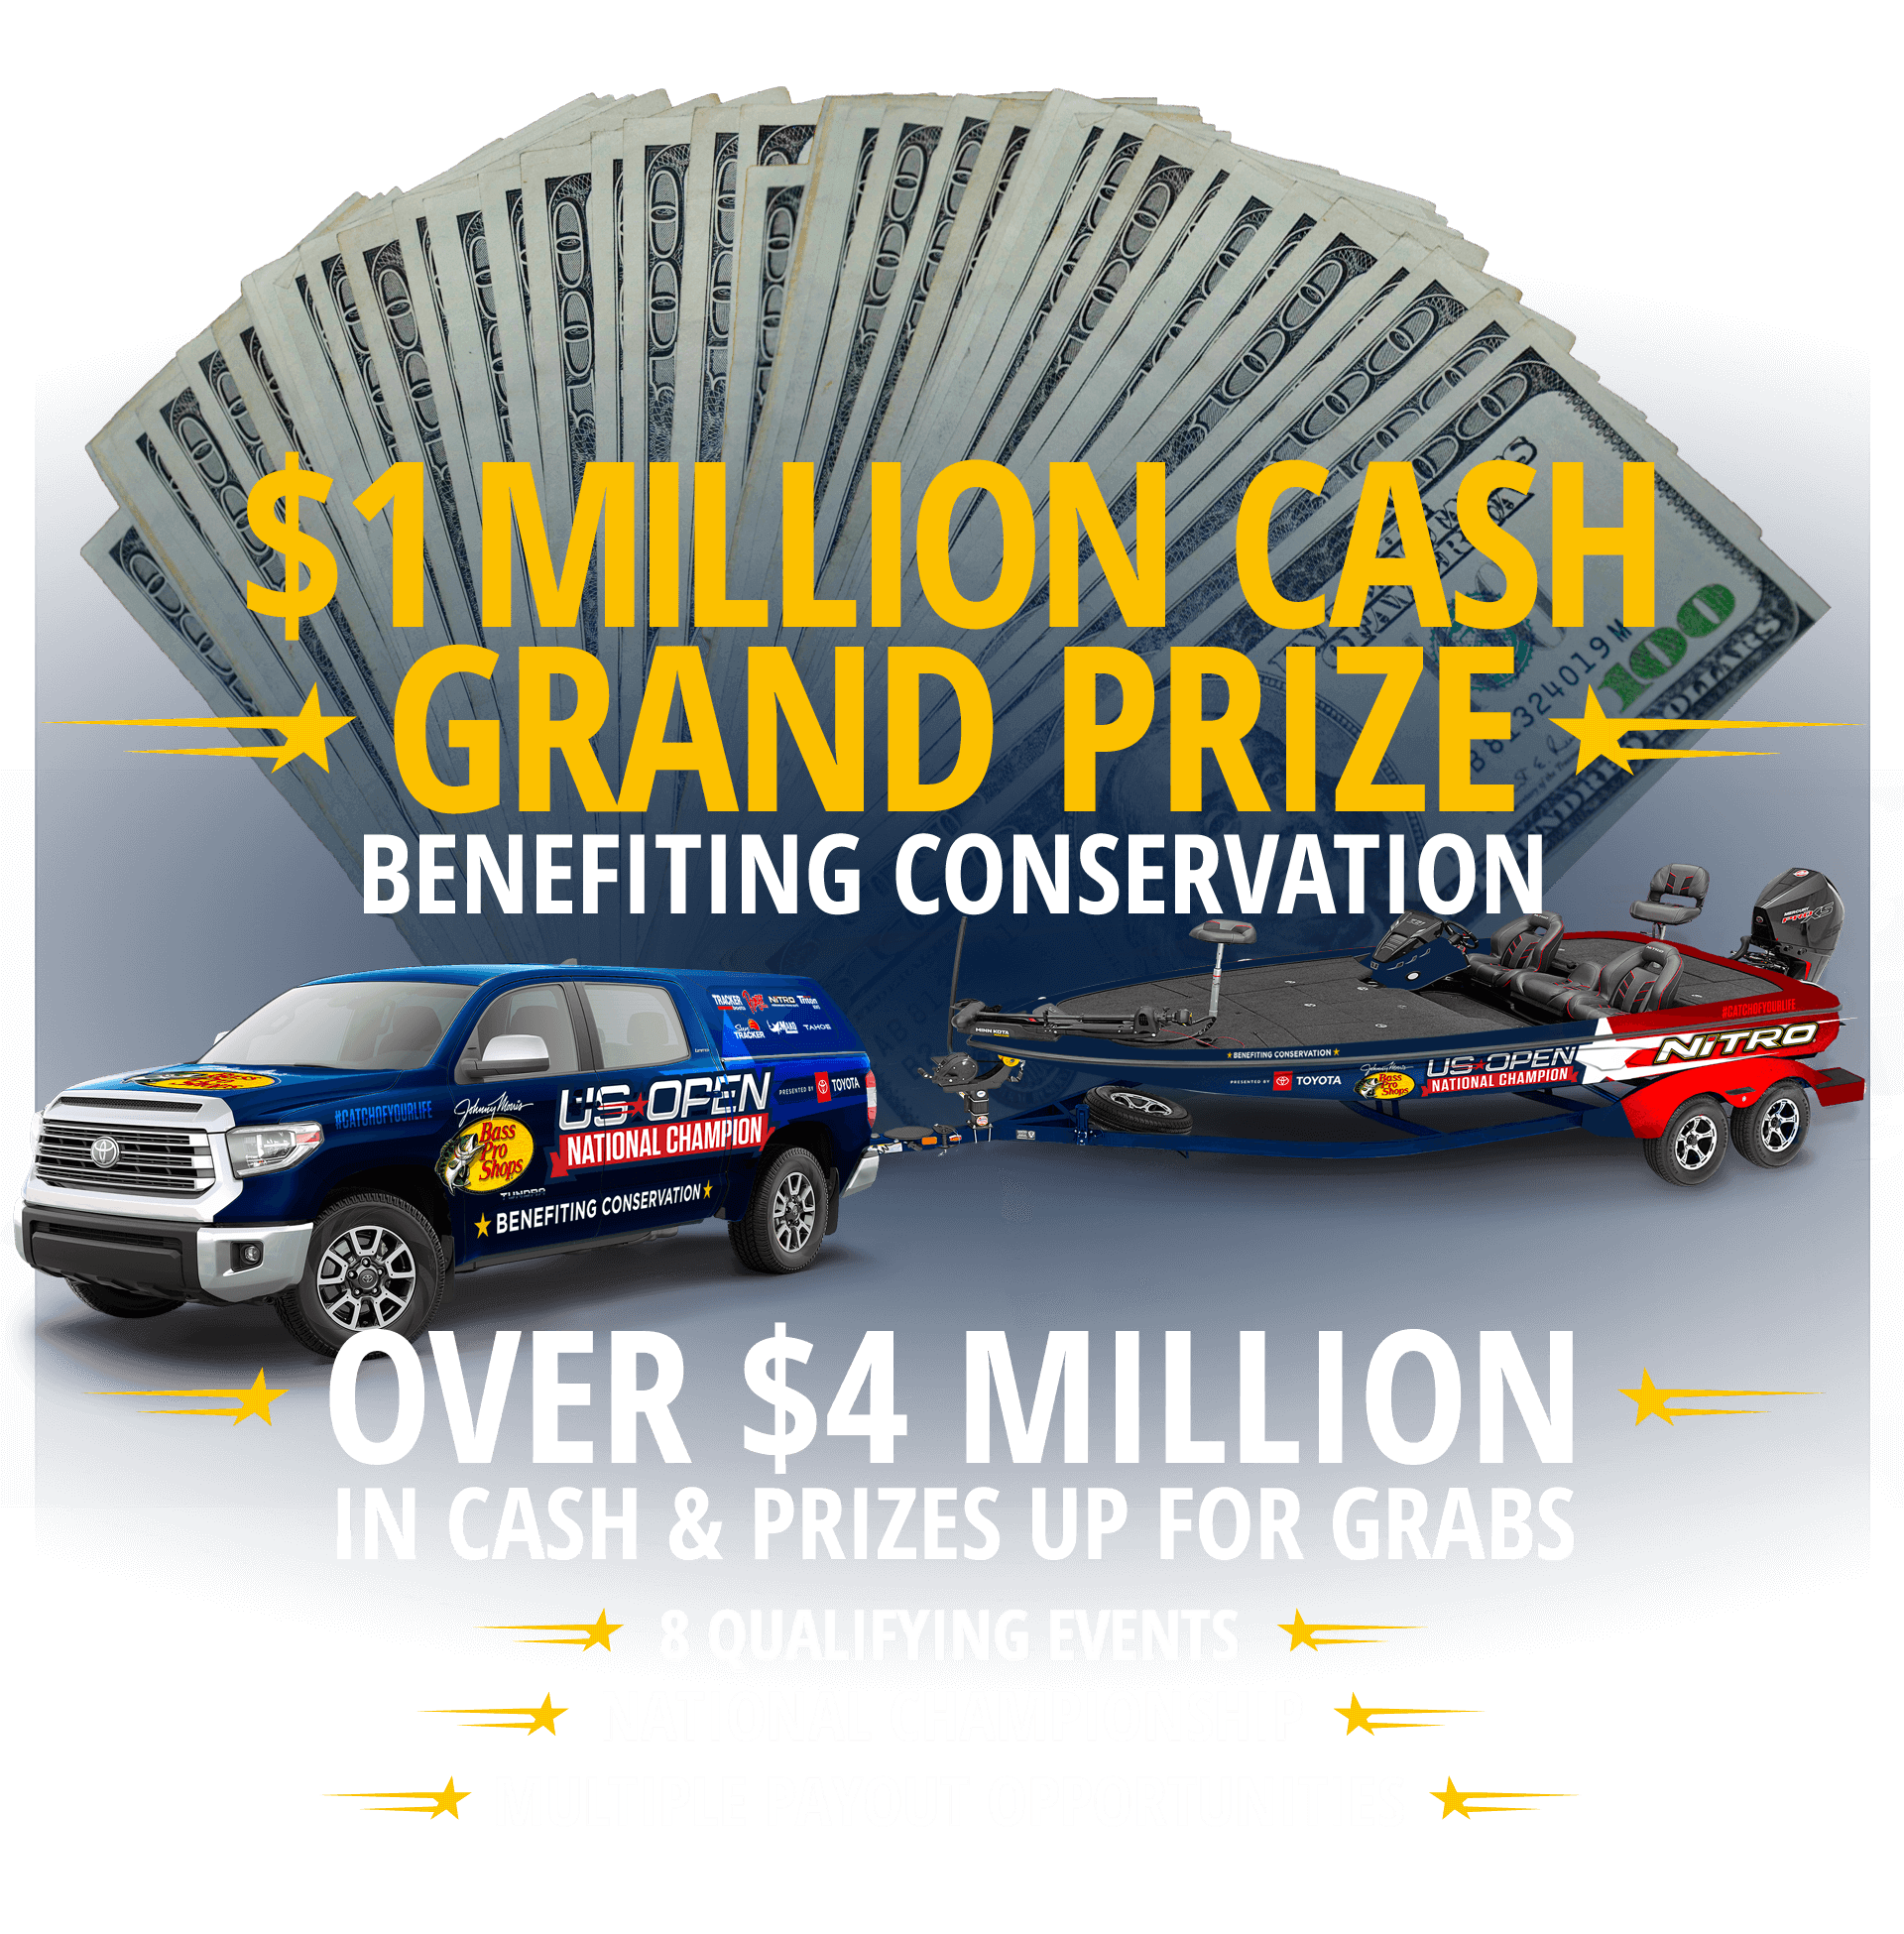 $1 Million Grand Prize - Biggest bass wins a new Toyota truck & bass boat